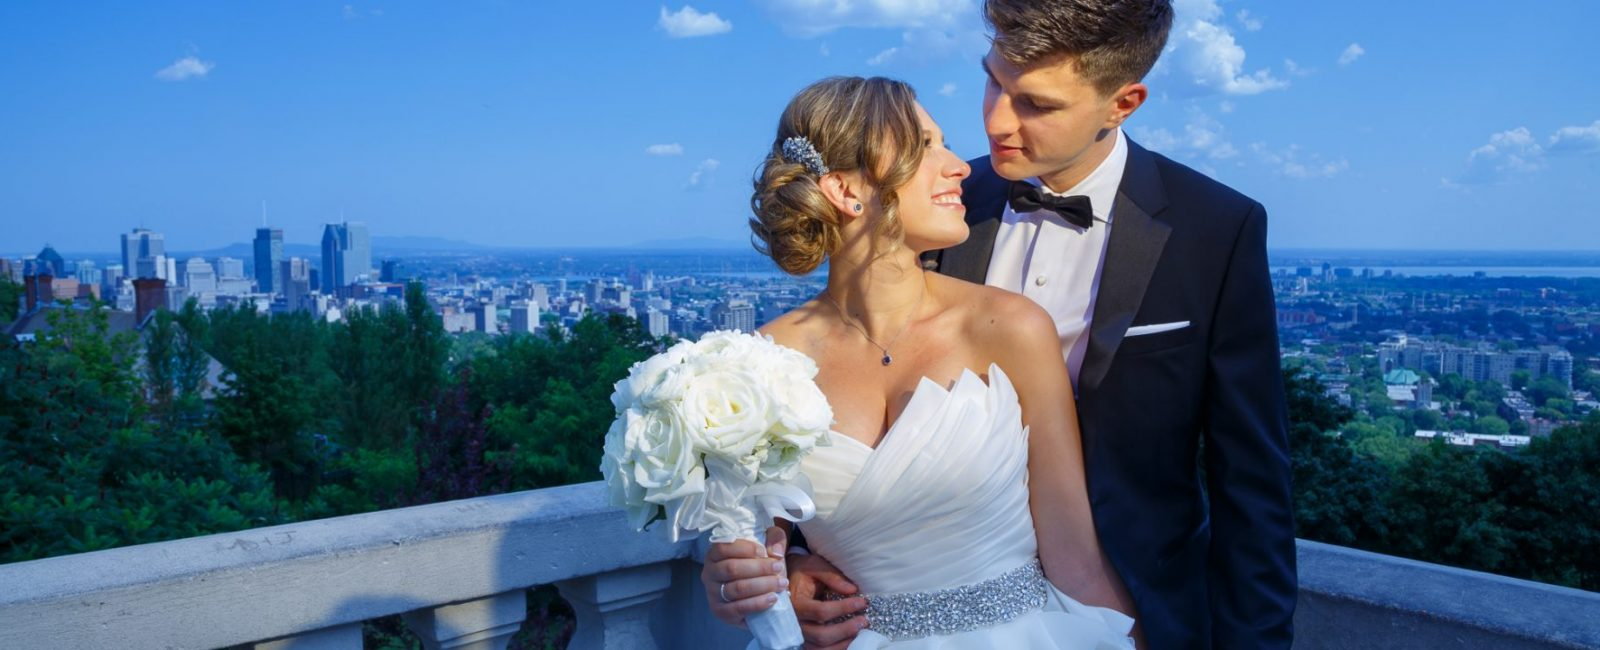 Wedding couple in Montreal scenic view